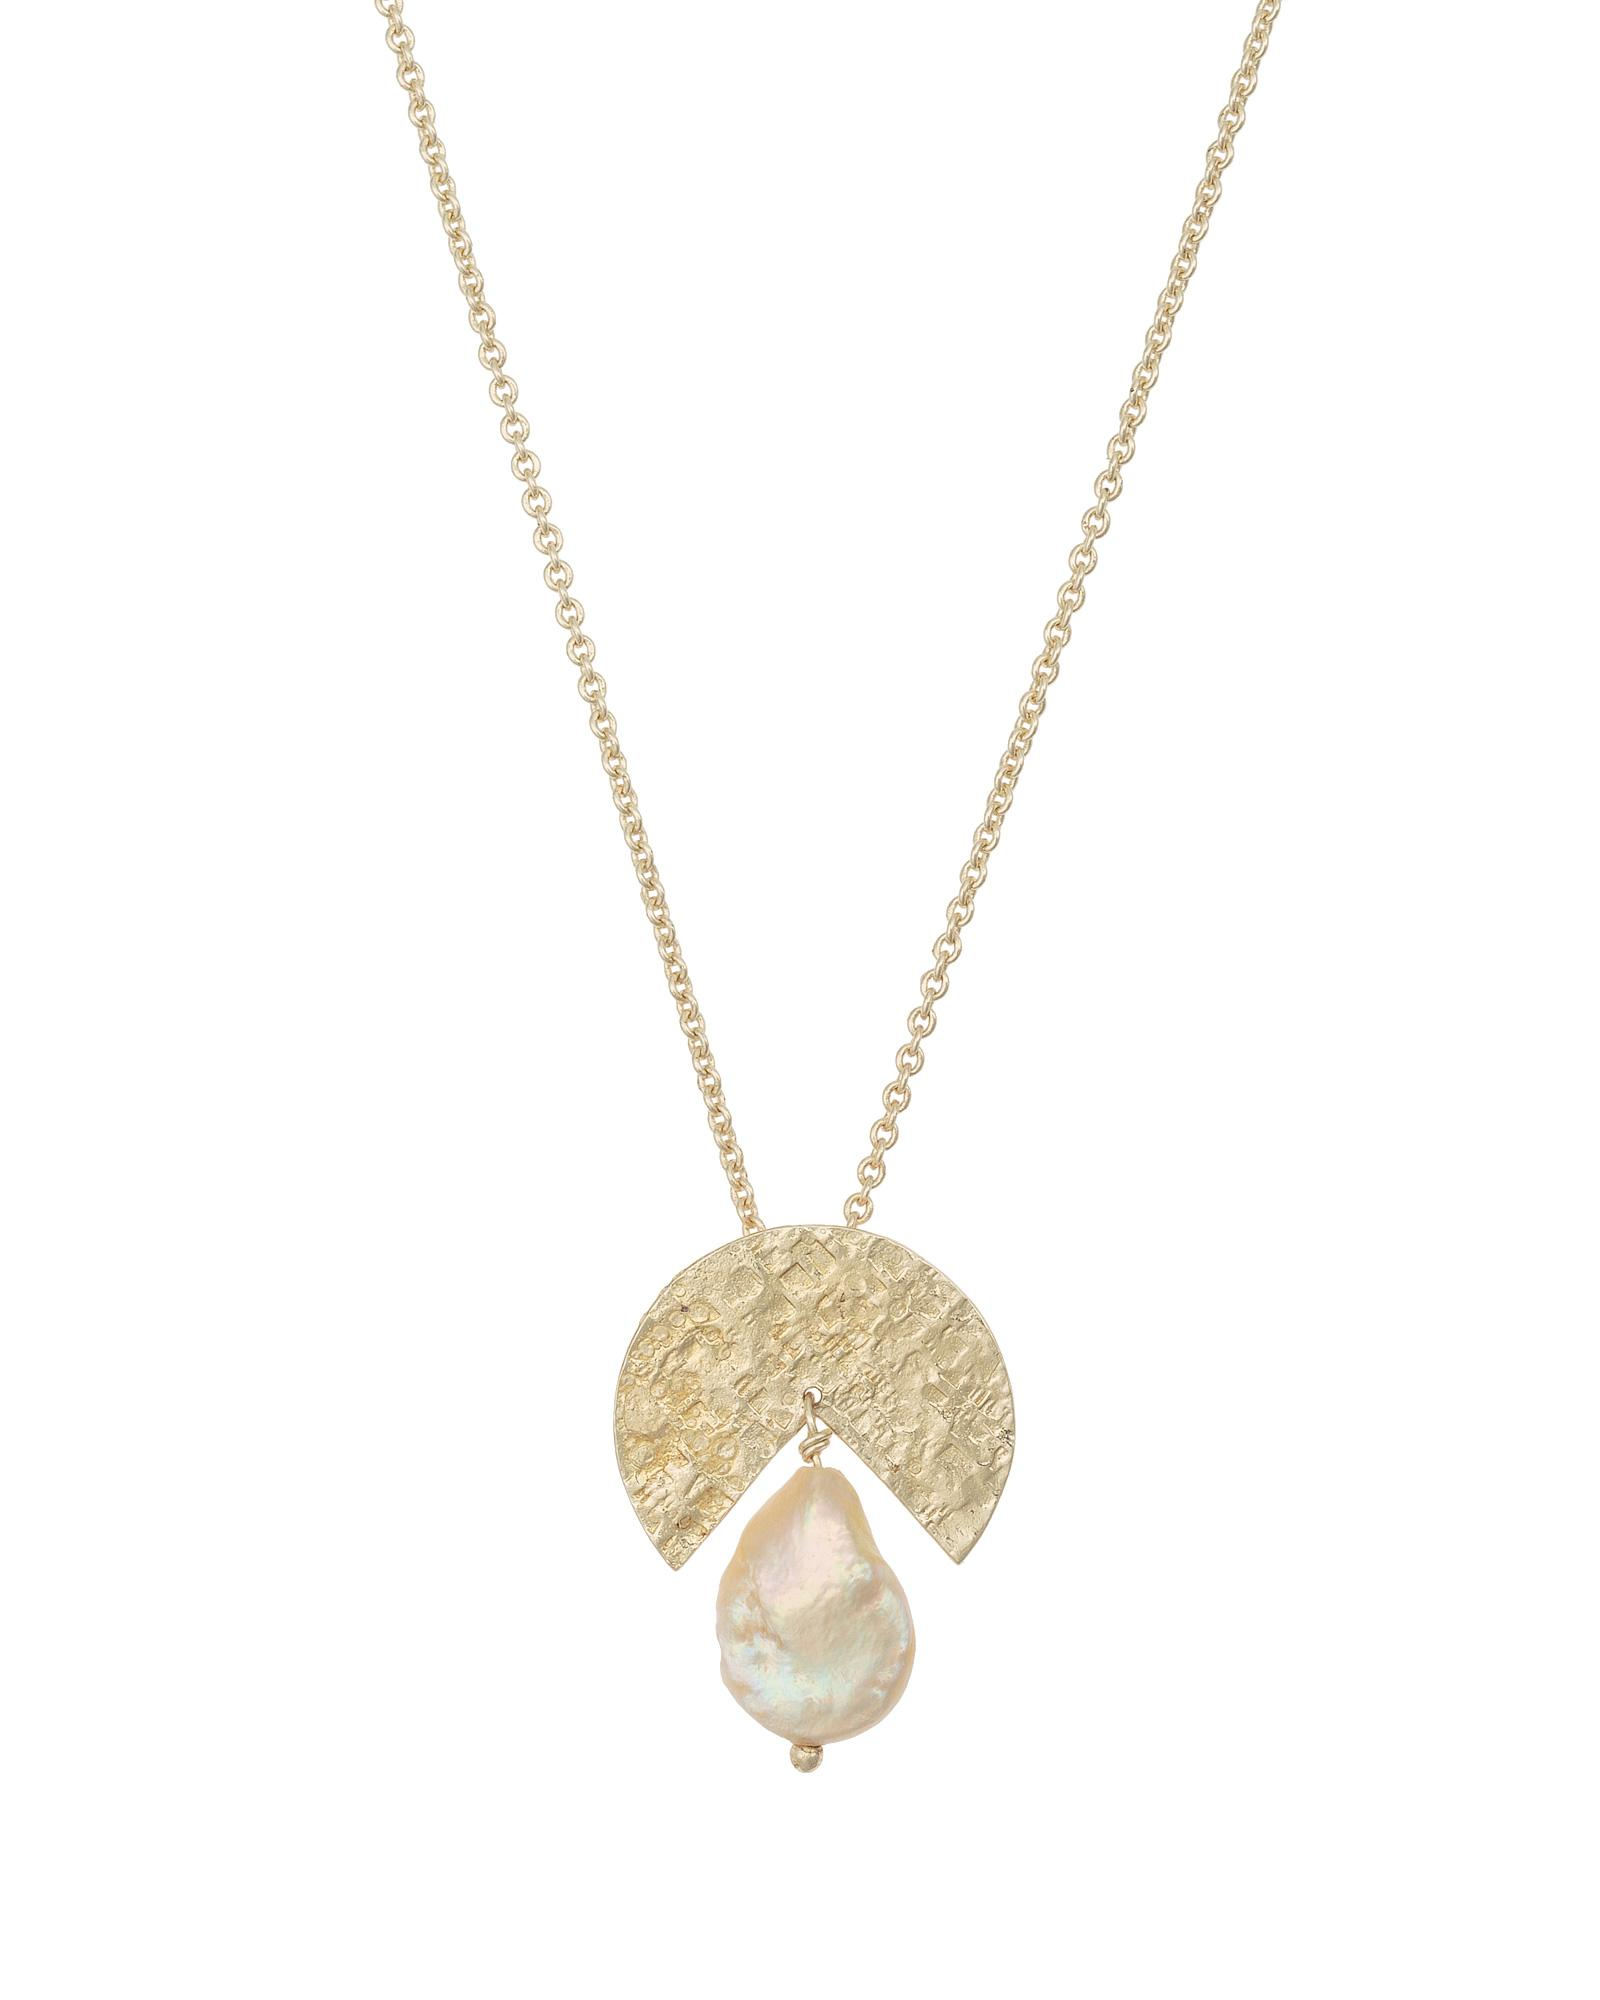 70b69f007e129 Lyst - Oliver Bonas Bodee Textured Disk & Pearl Gold Plated Necklace ...